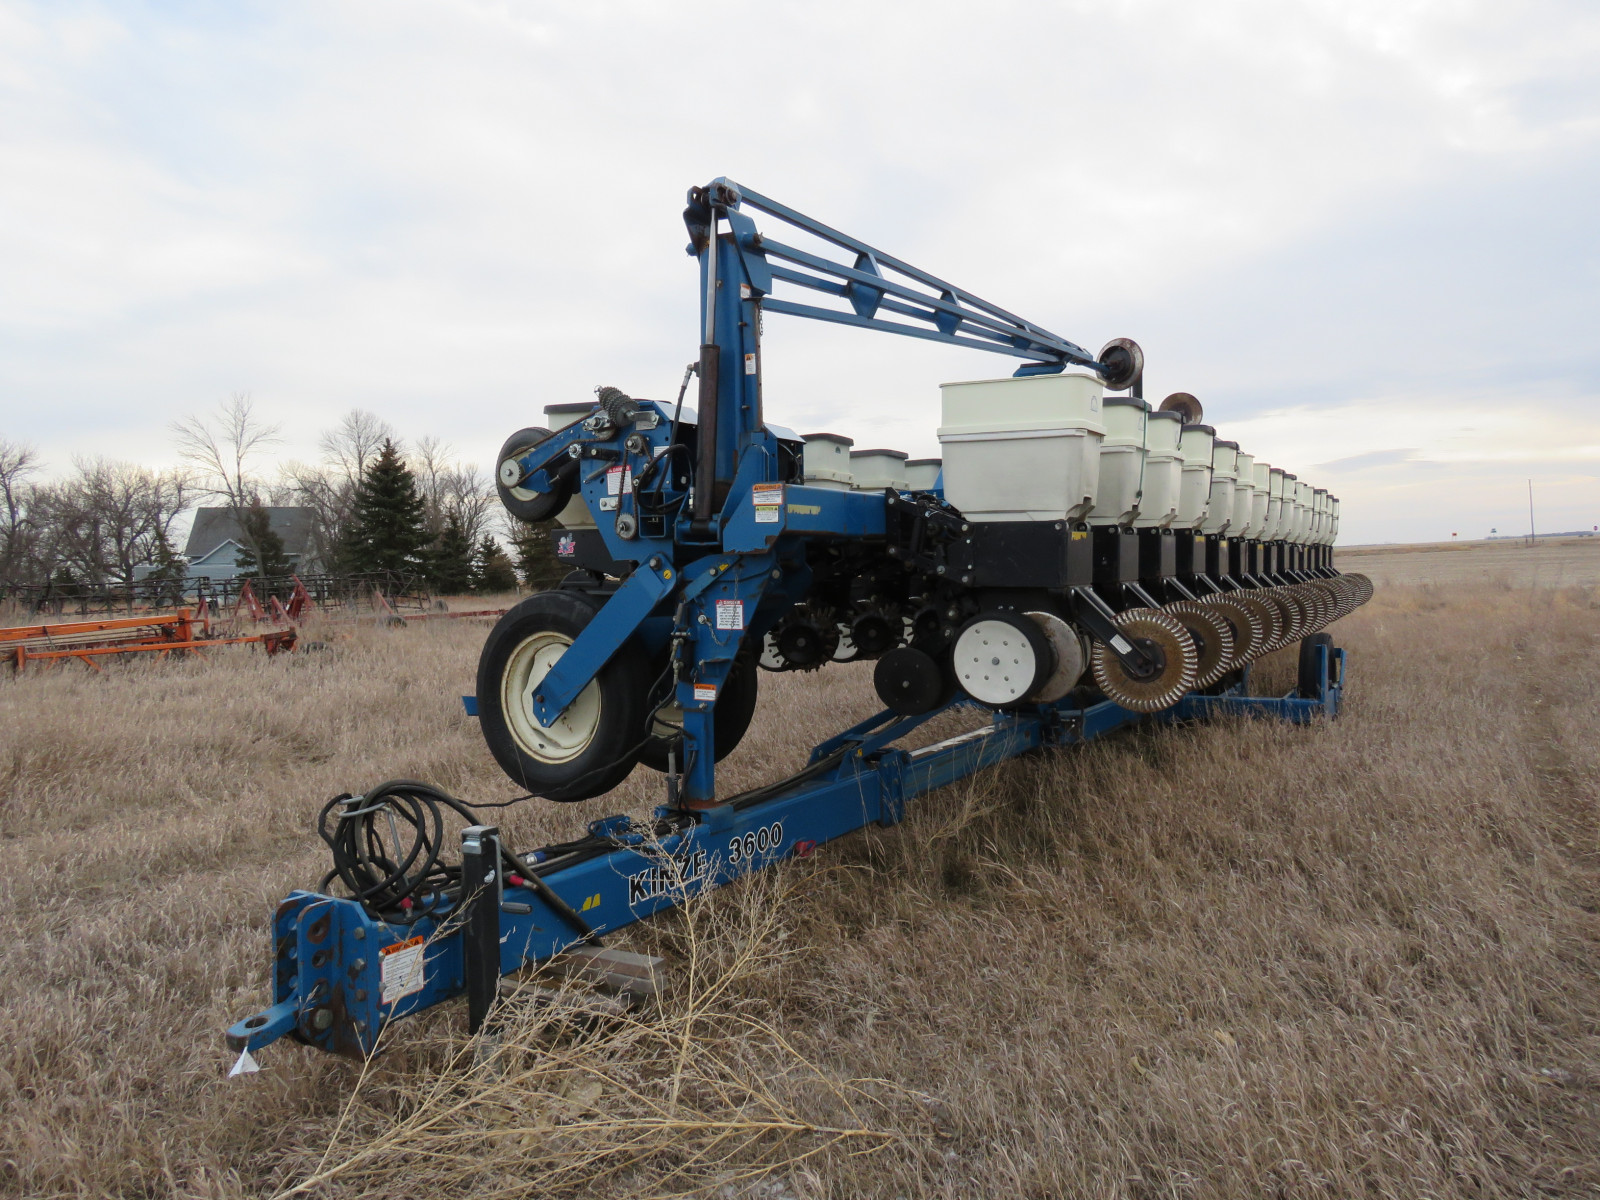 2004 Kinze 3600 16 Row Planter - Image 2